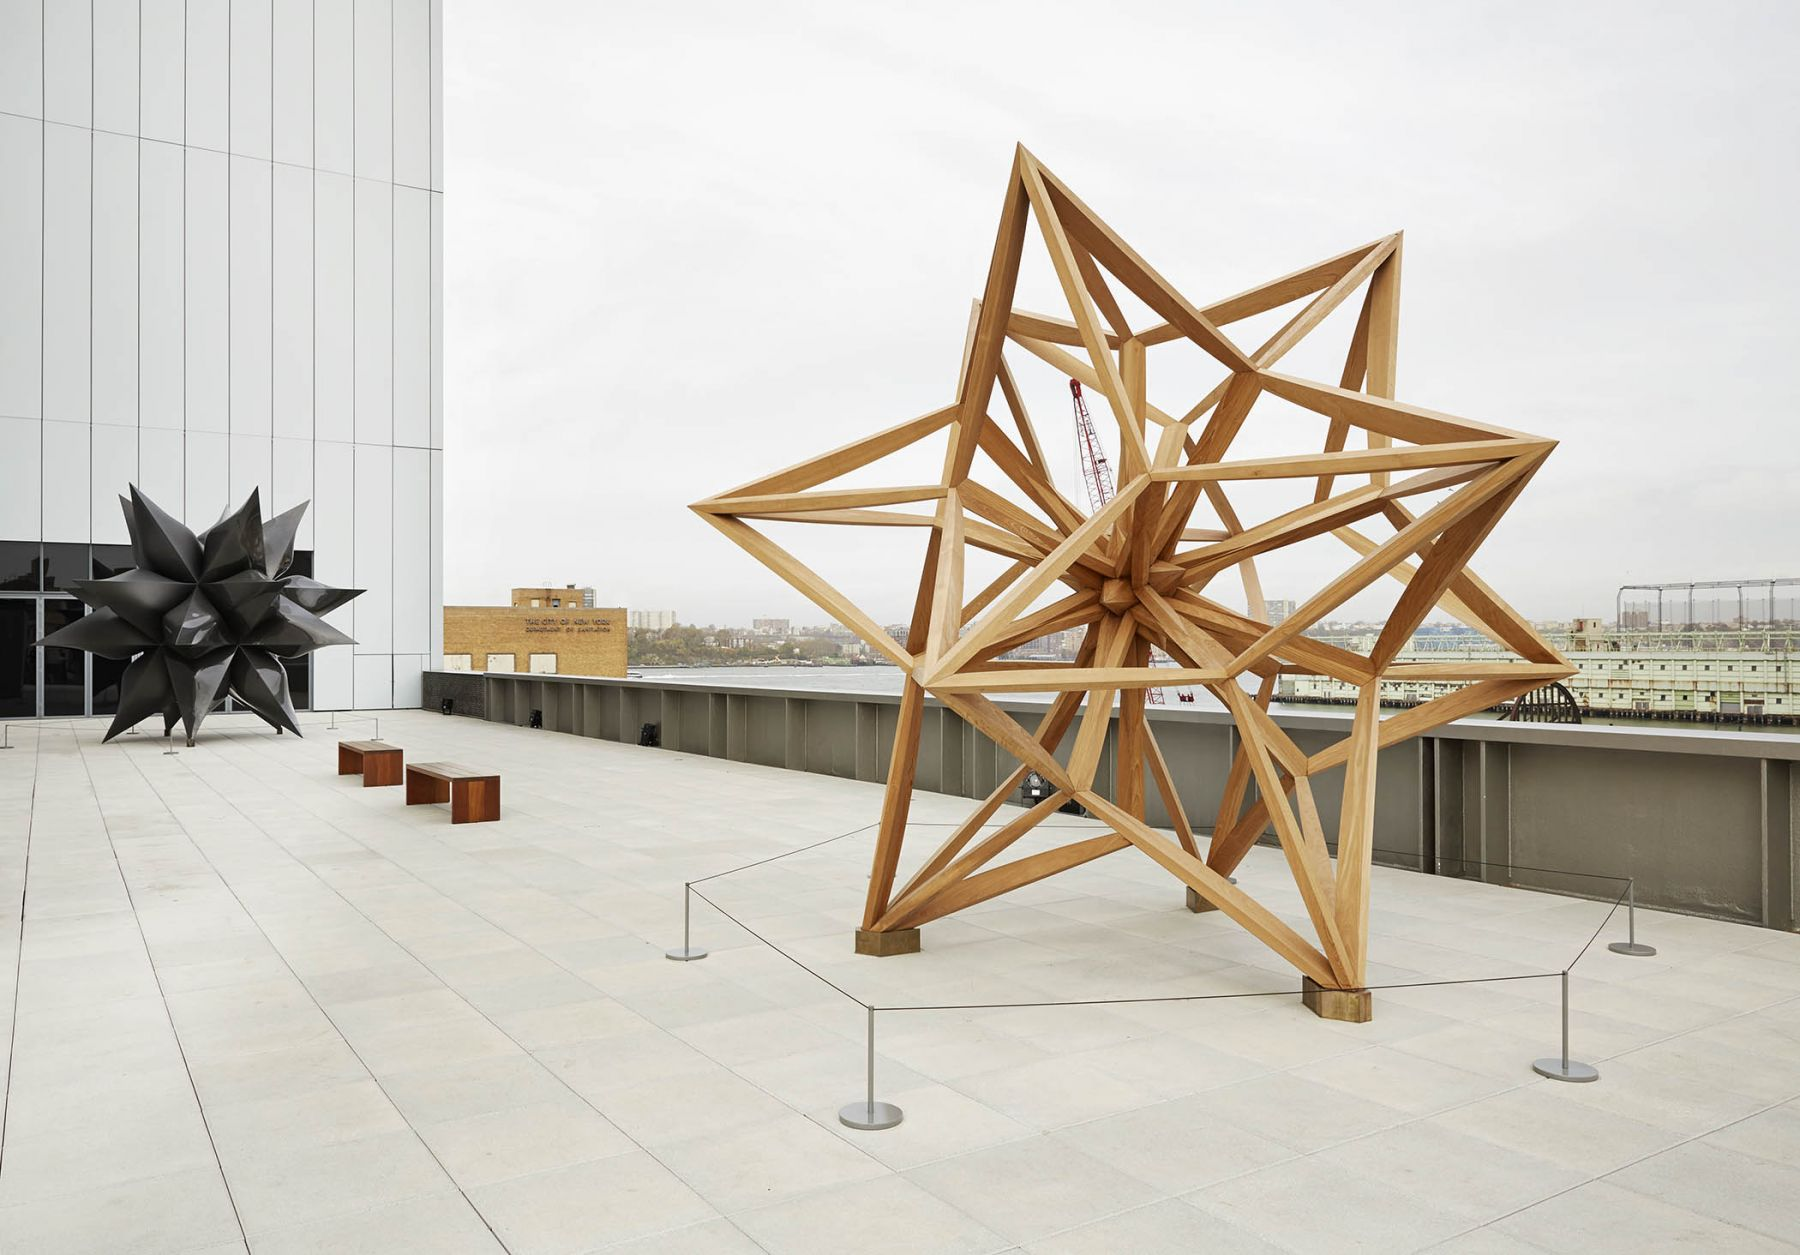 A wooden star by frank stella on a rooftop of the whitney museum of art